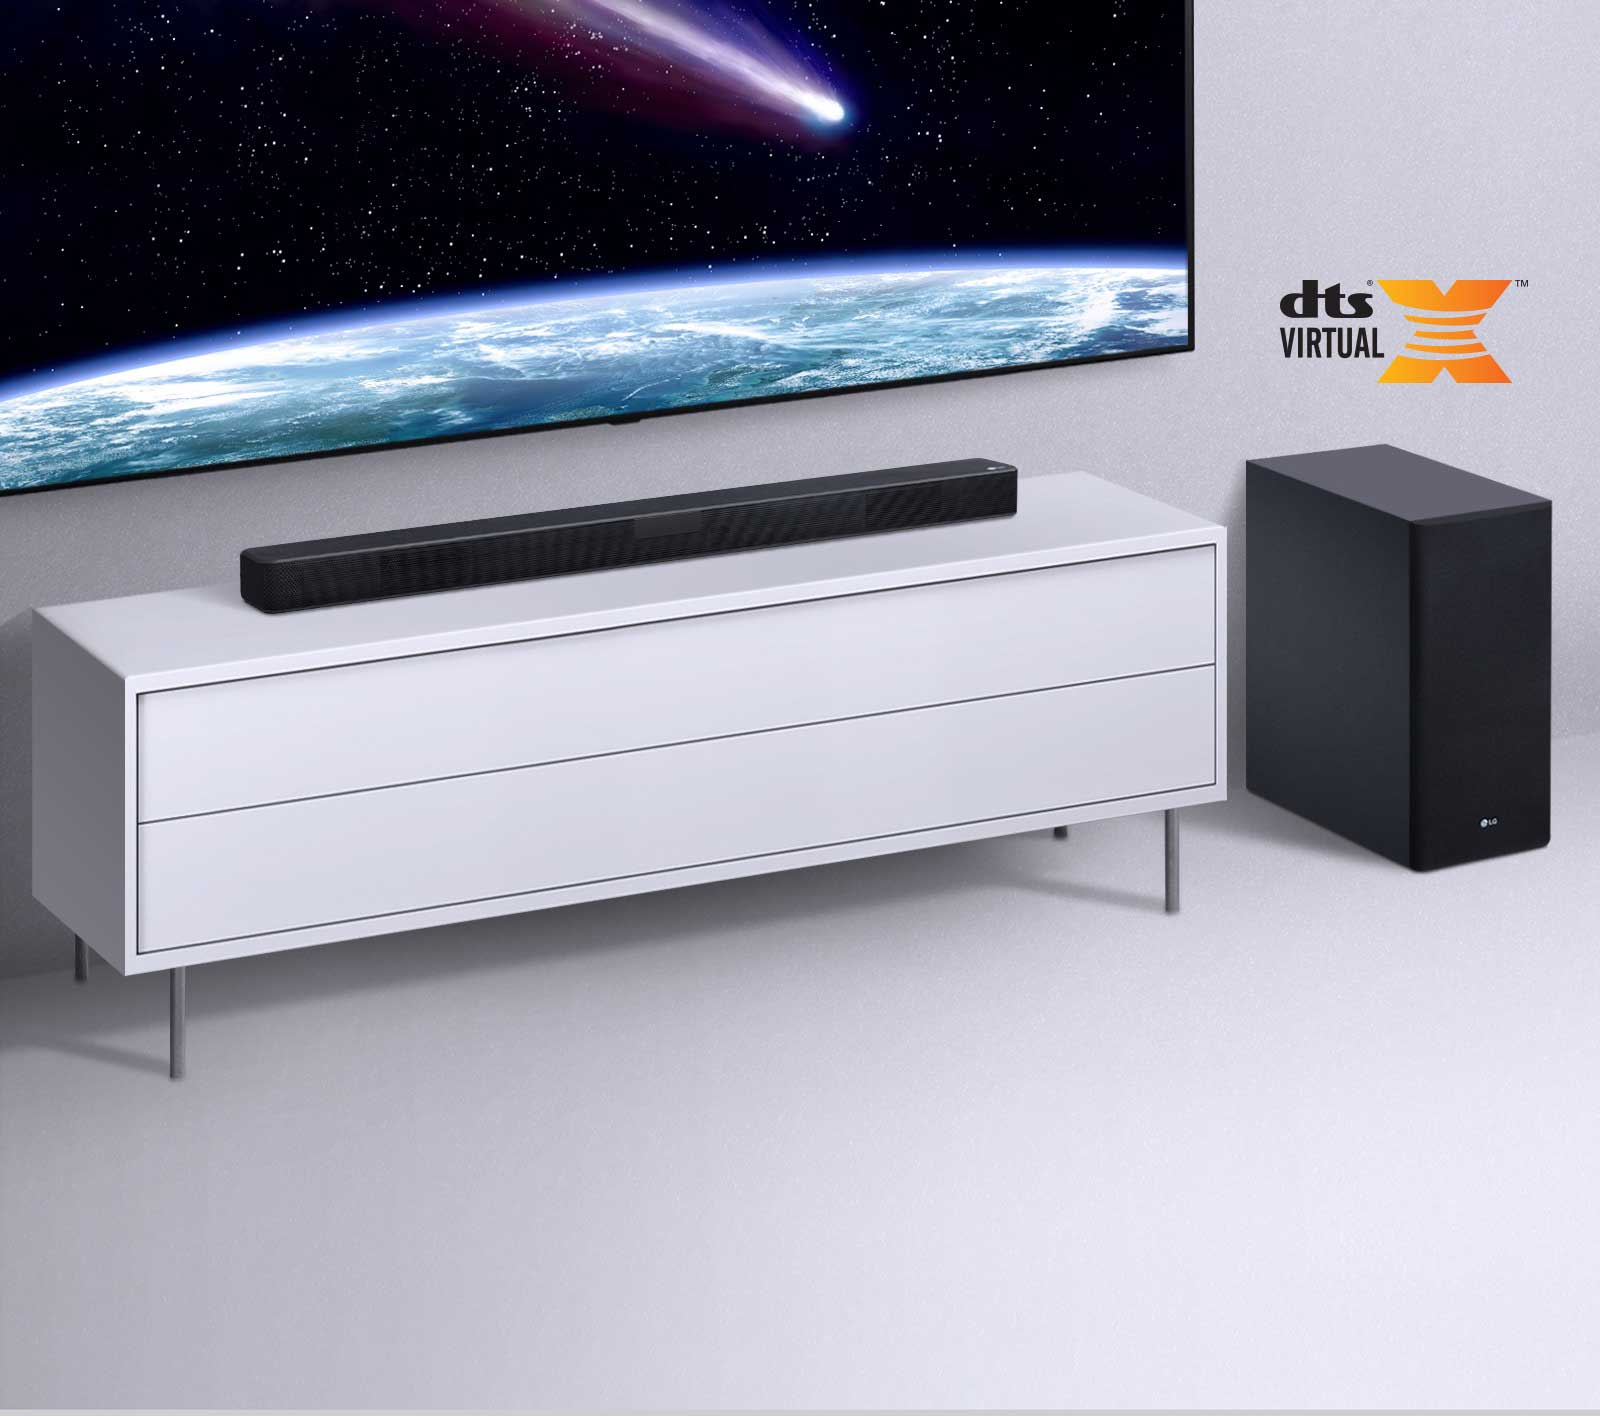 A Powerful Sound Bar Experience1